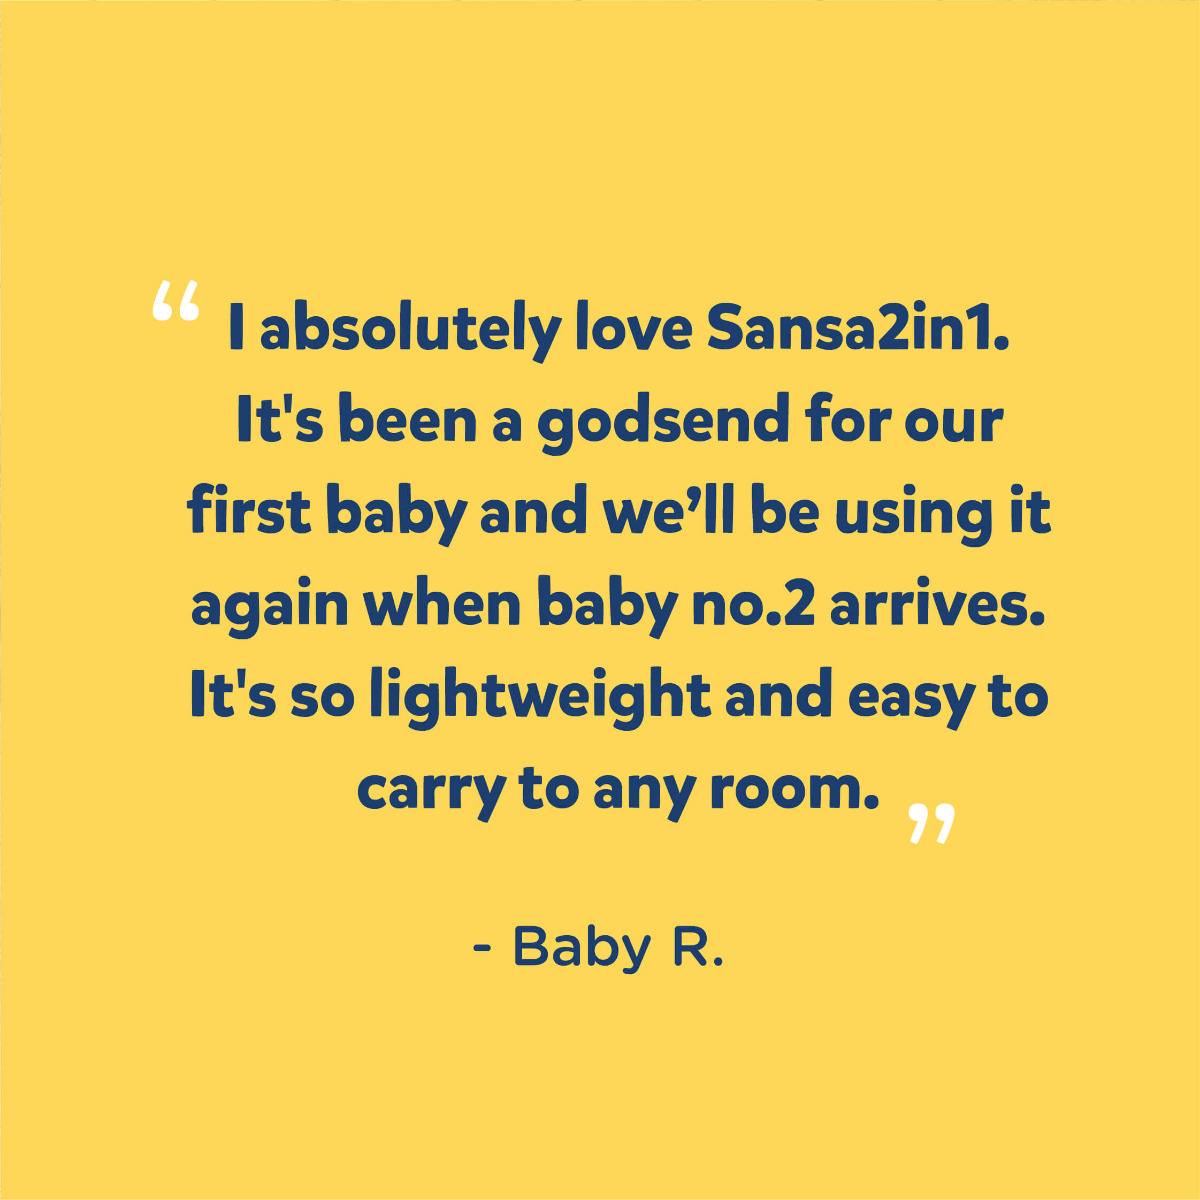 I absolutely love Sansa2in1. It's been a godsend for our first baby and we'll be using it again when baby no.2 arrives. It's so lightweight and easy to carry to any room.